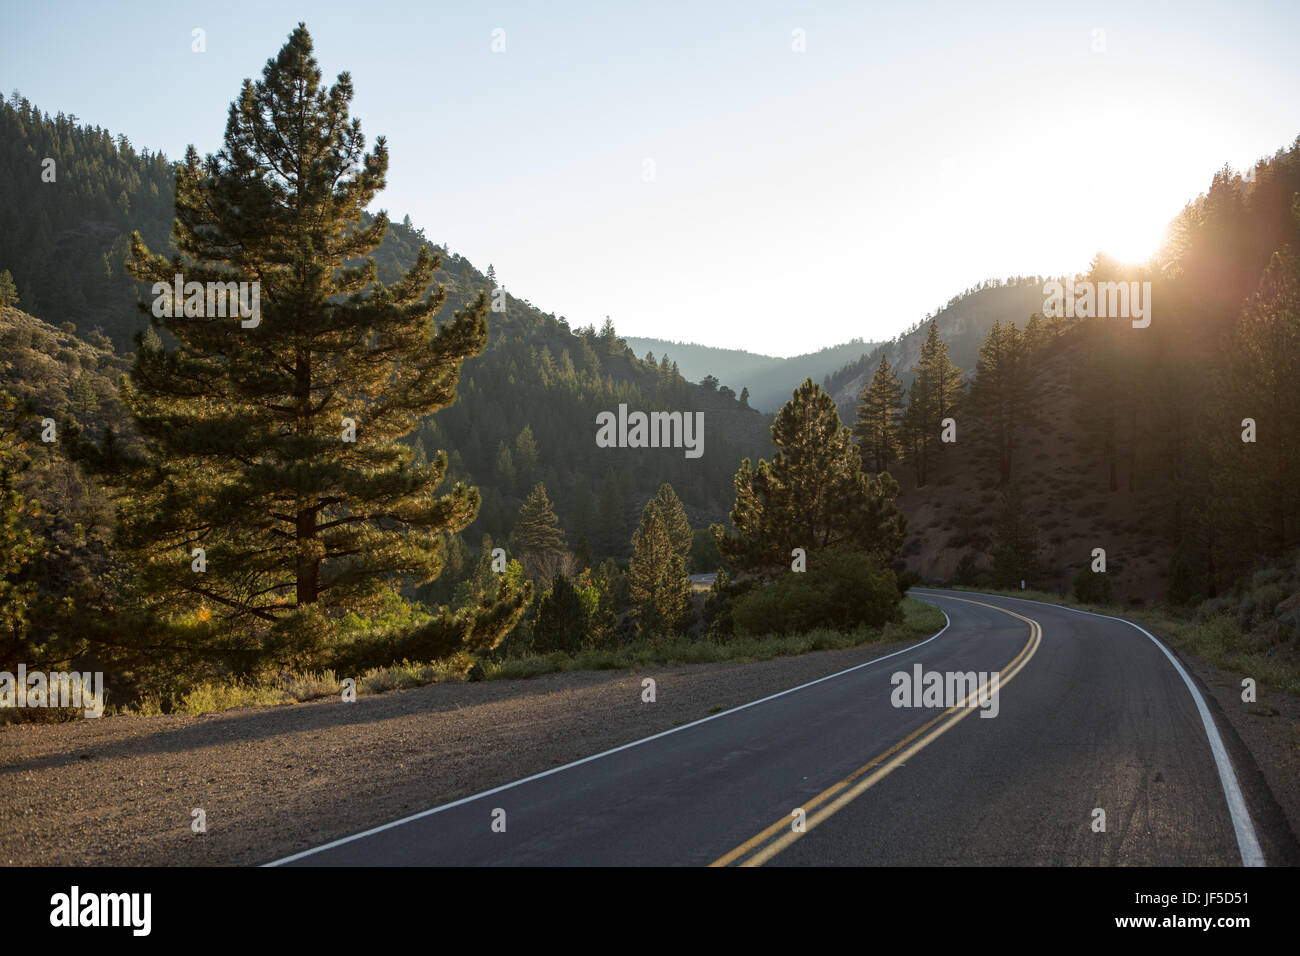 A road curving through mountains as the sun bursts from behind trees. - Stock Image